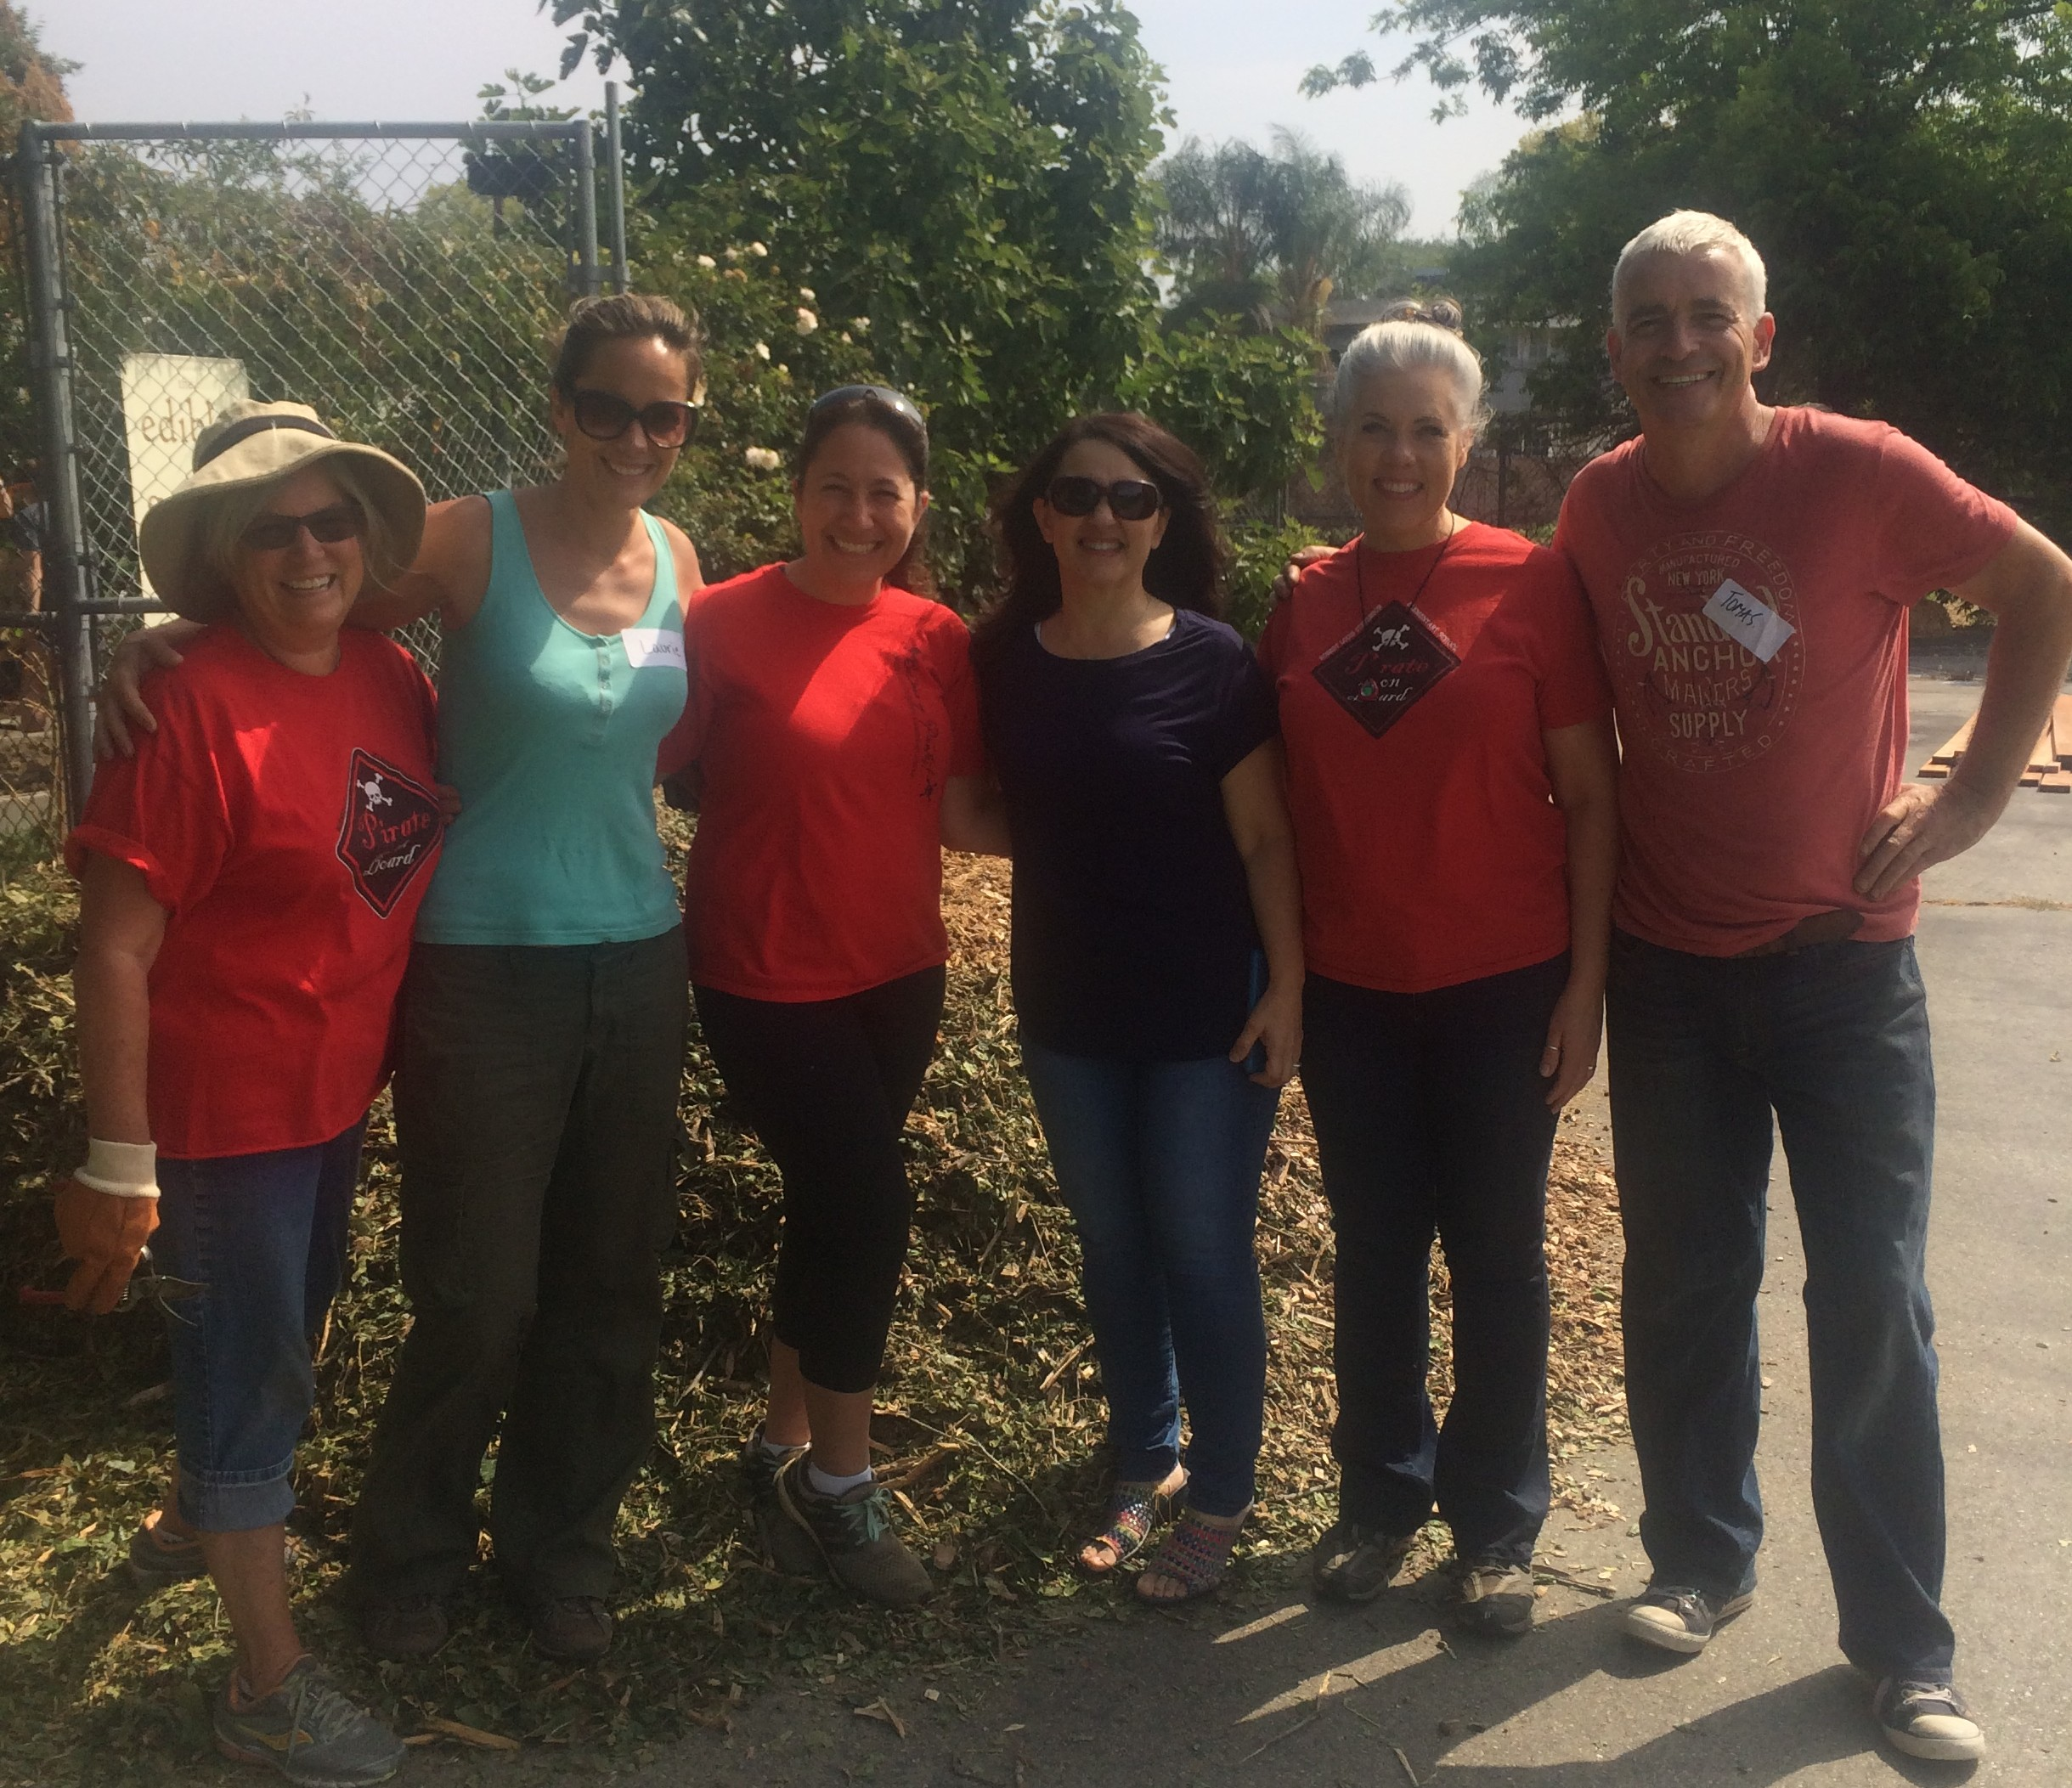 Also on hand were (L to R) Rayna Boehme, Laurie Okin, Charlene Ishkhanian, Christina Desiderio (Principal, Robert Louis Stevenson Elementary), Sue Zimmermann, and Tomas O'Grady (Executive Director, EnrichLA)